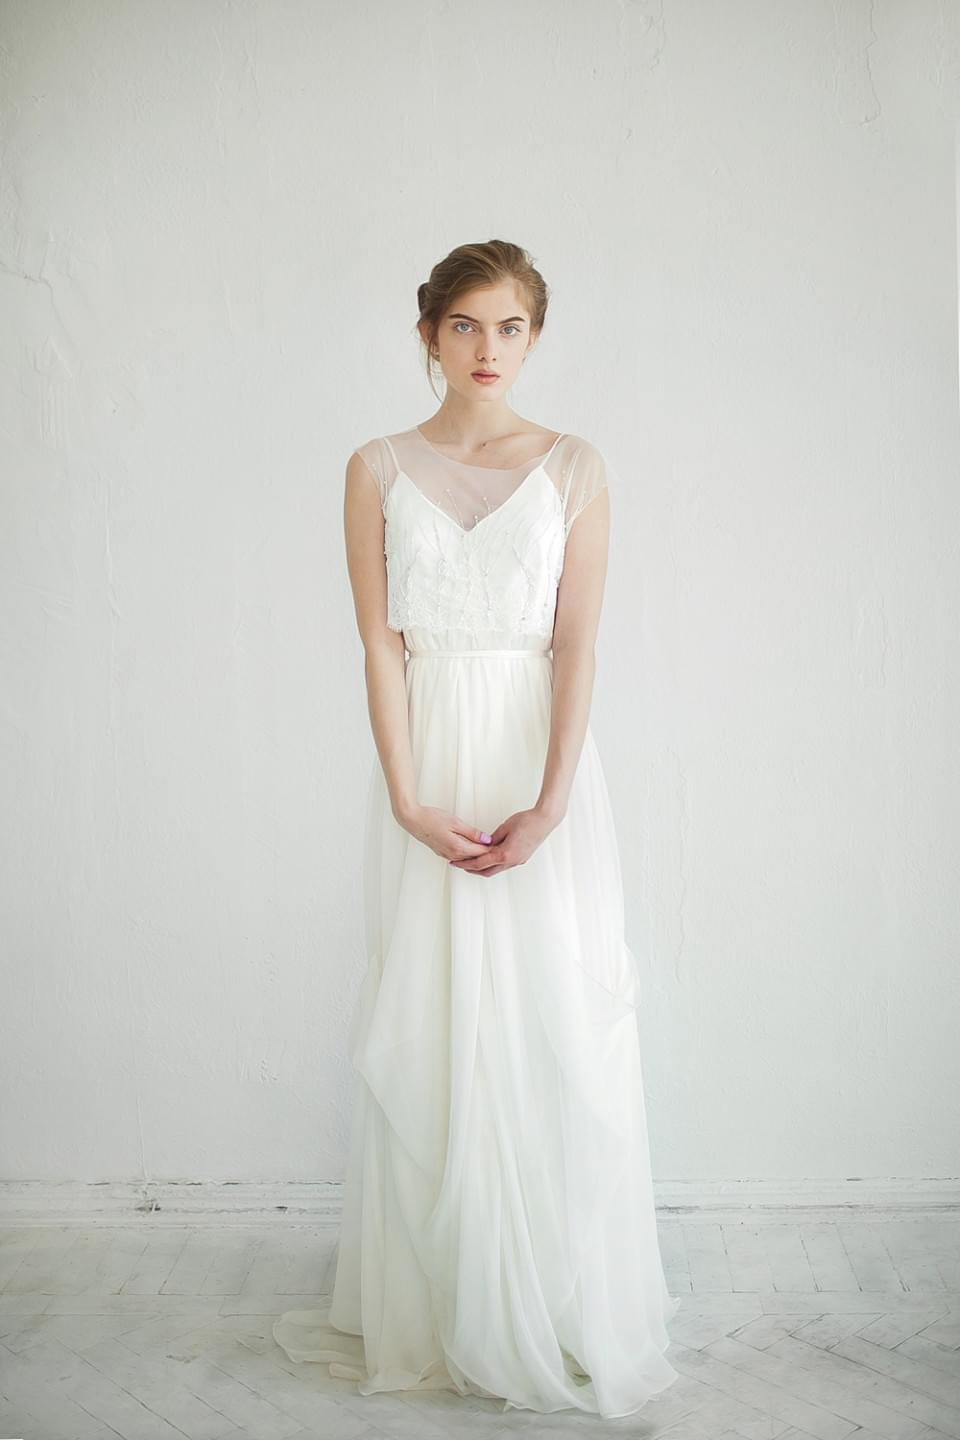 Ca'RouselBridalGown_Lili_03